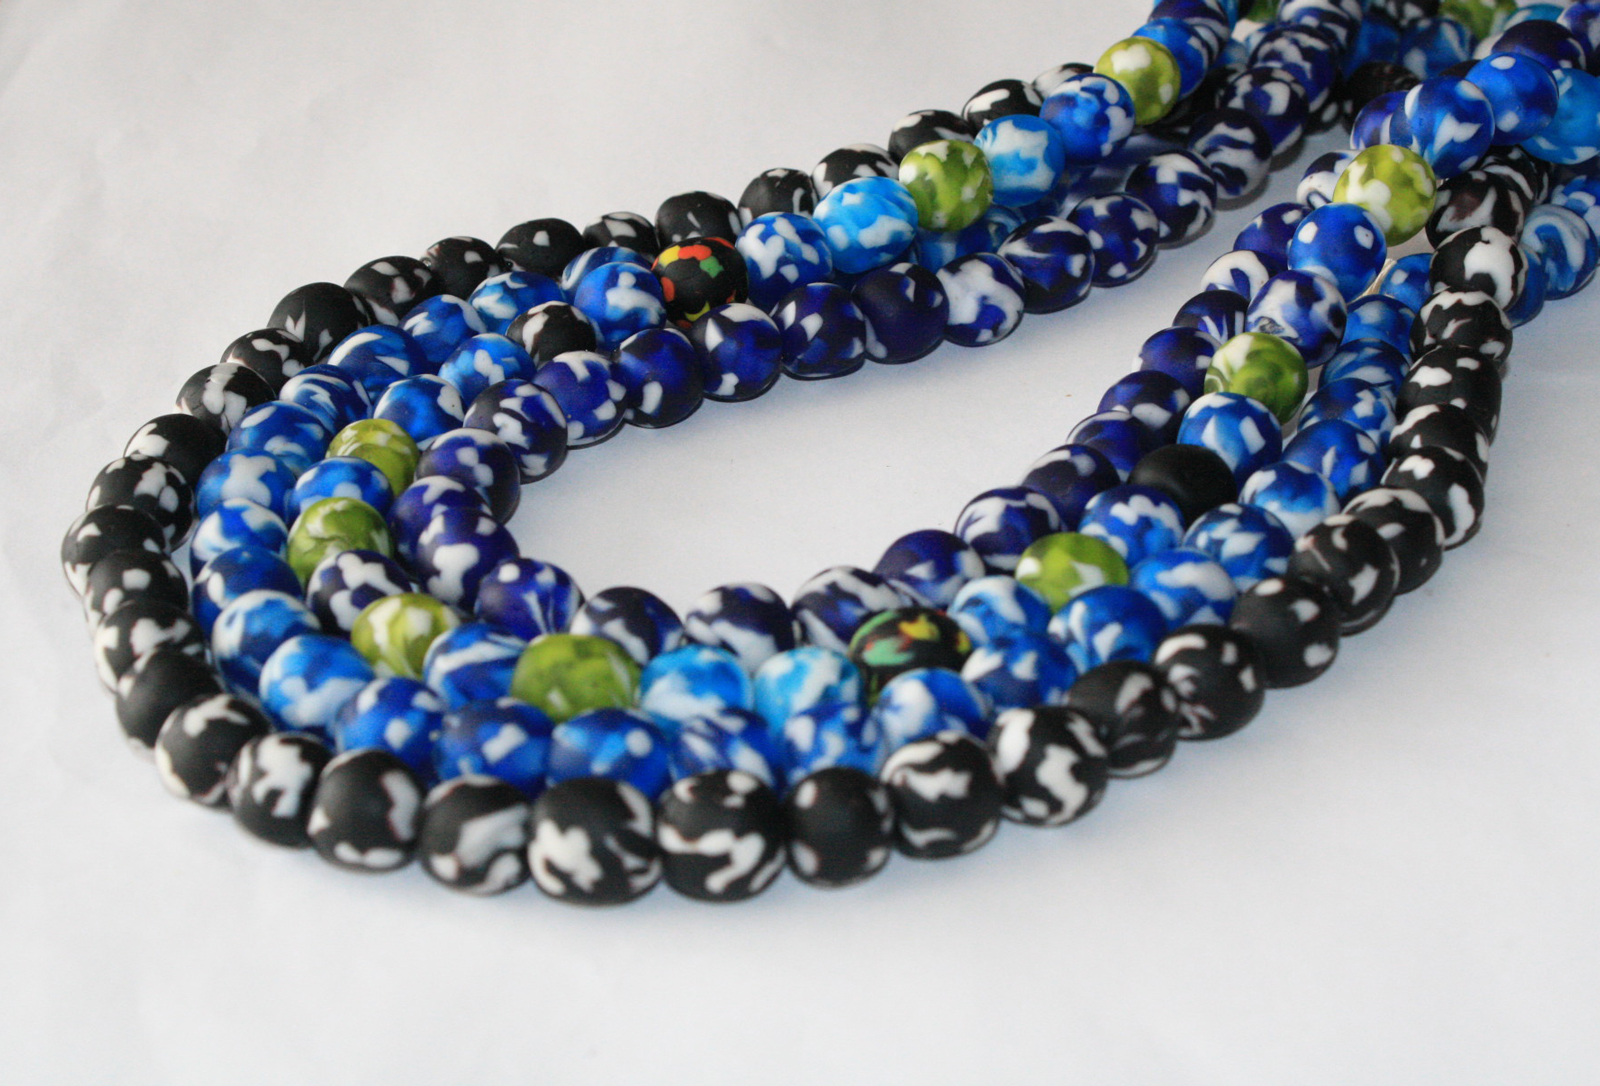 Afican-Beads-Ghana-Refashioned-Glass-Round-13-to-15mm–Blue-Black-Turquoise